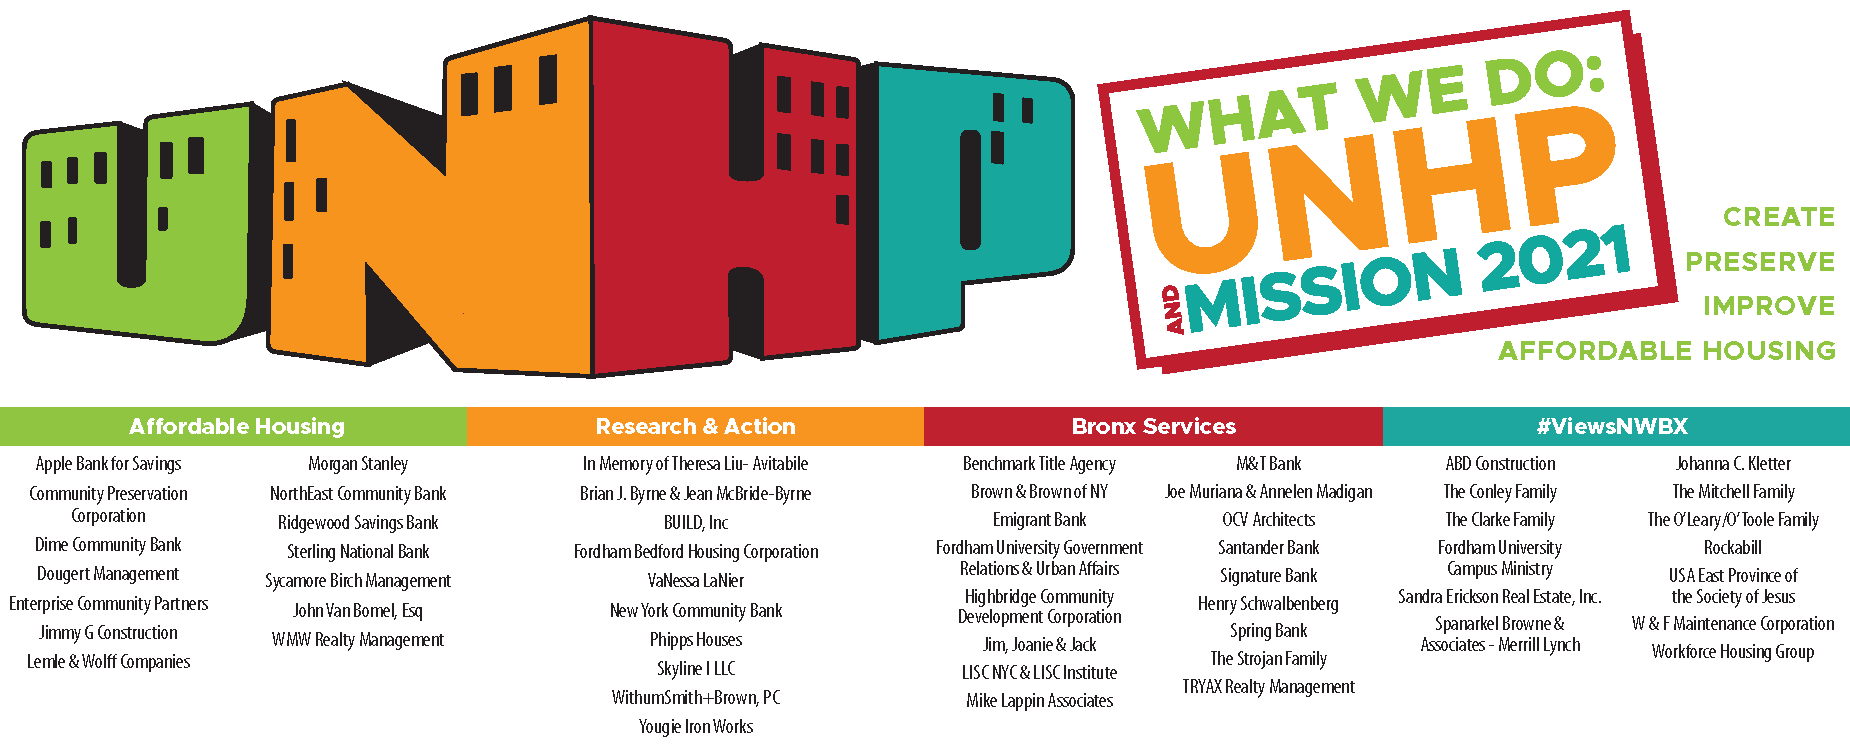 The Webinar was part of our What We Do event series and fundraiser. UNHP let attendees know that our work is supported by our funders, donors and sponsors. Donations are welcome!